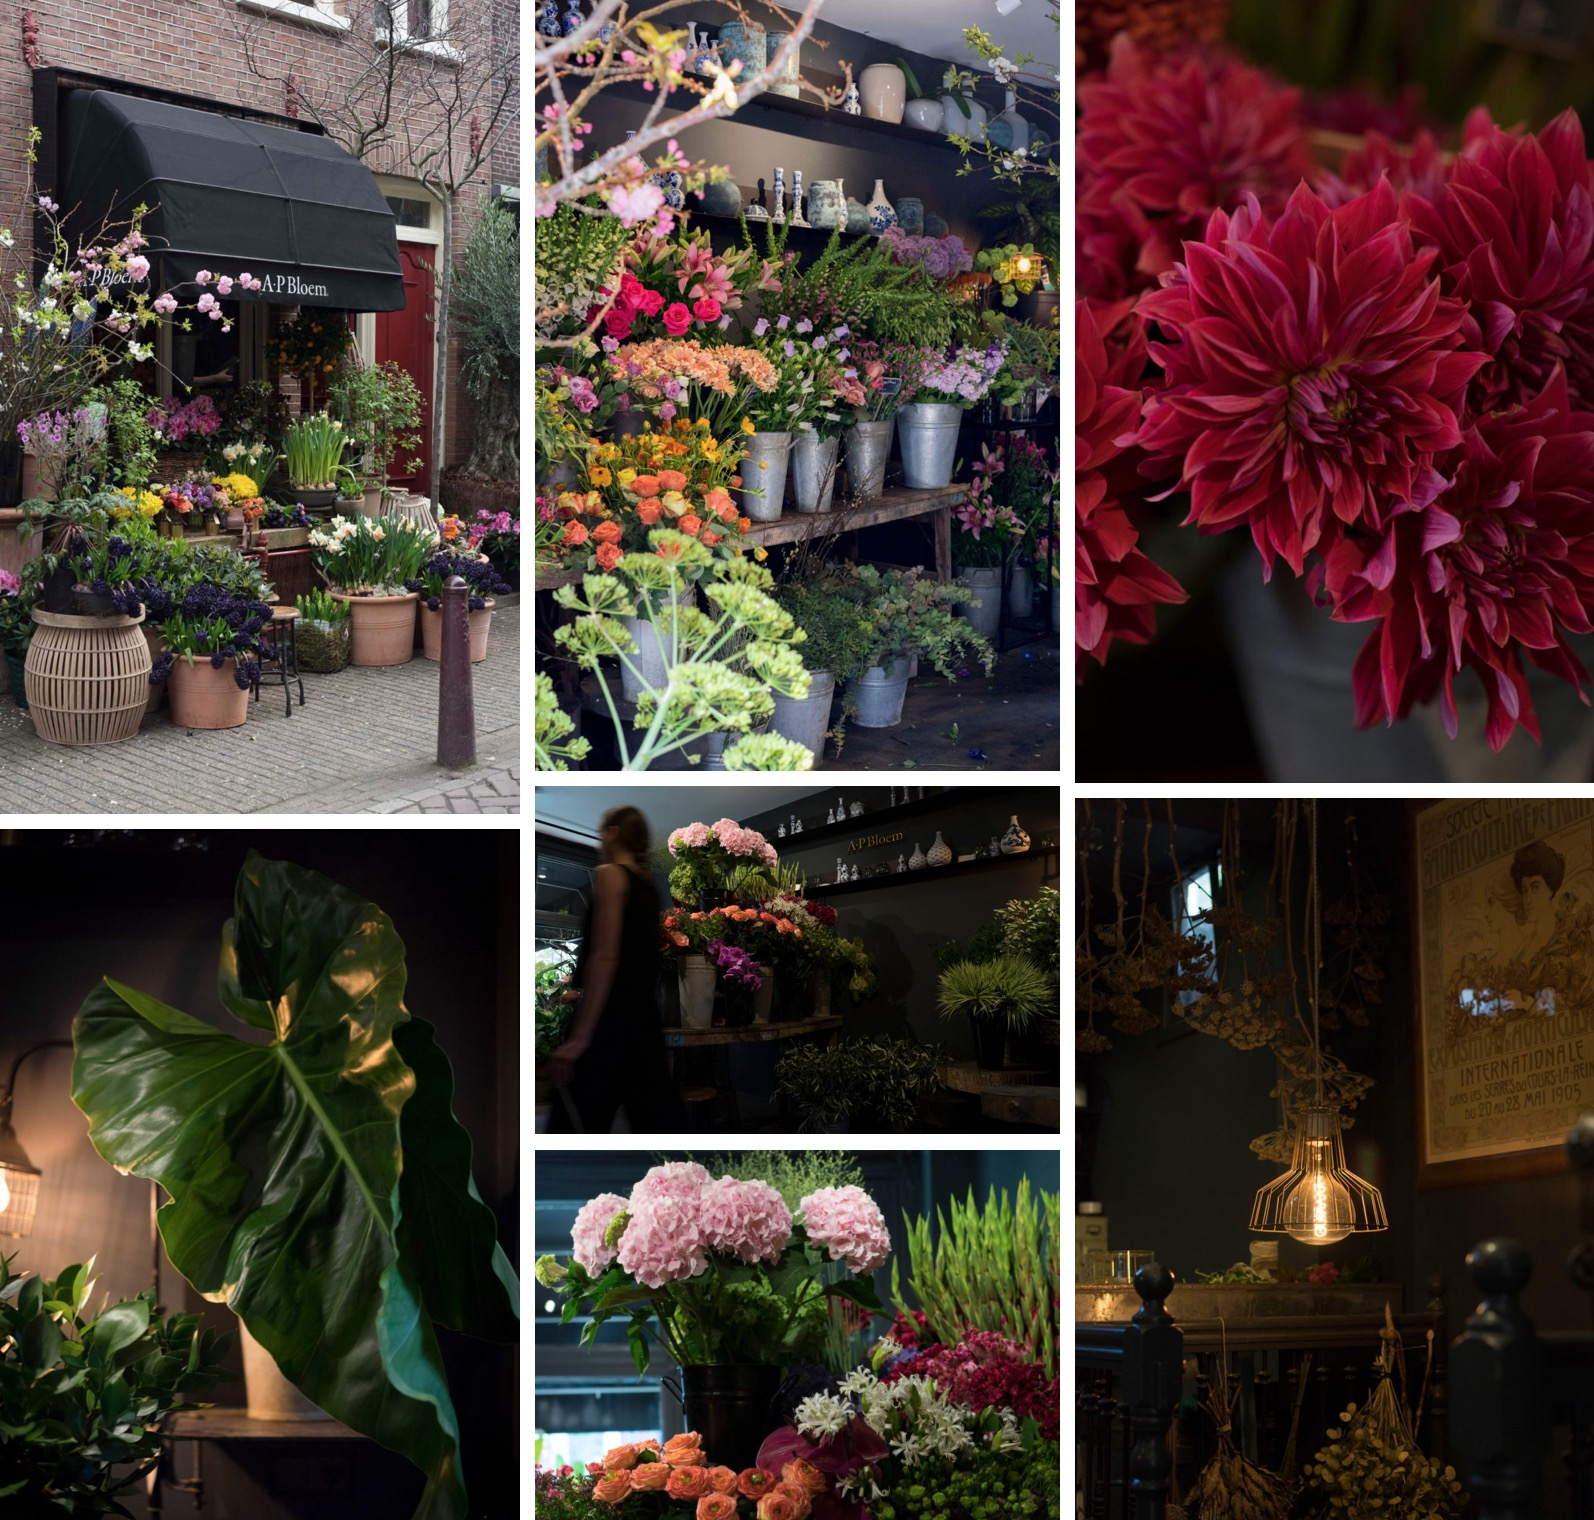 A.P Bloem Florist Bloemist Amsterdam favourite florists amsterdam Kerkstraat bloemenwinkel flower shop the shopkeepers the flower shopkeepers